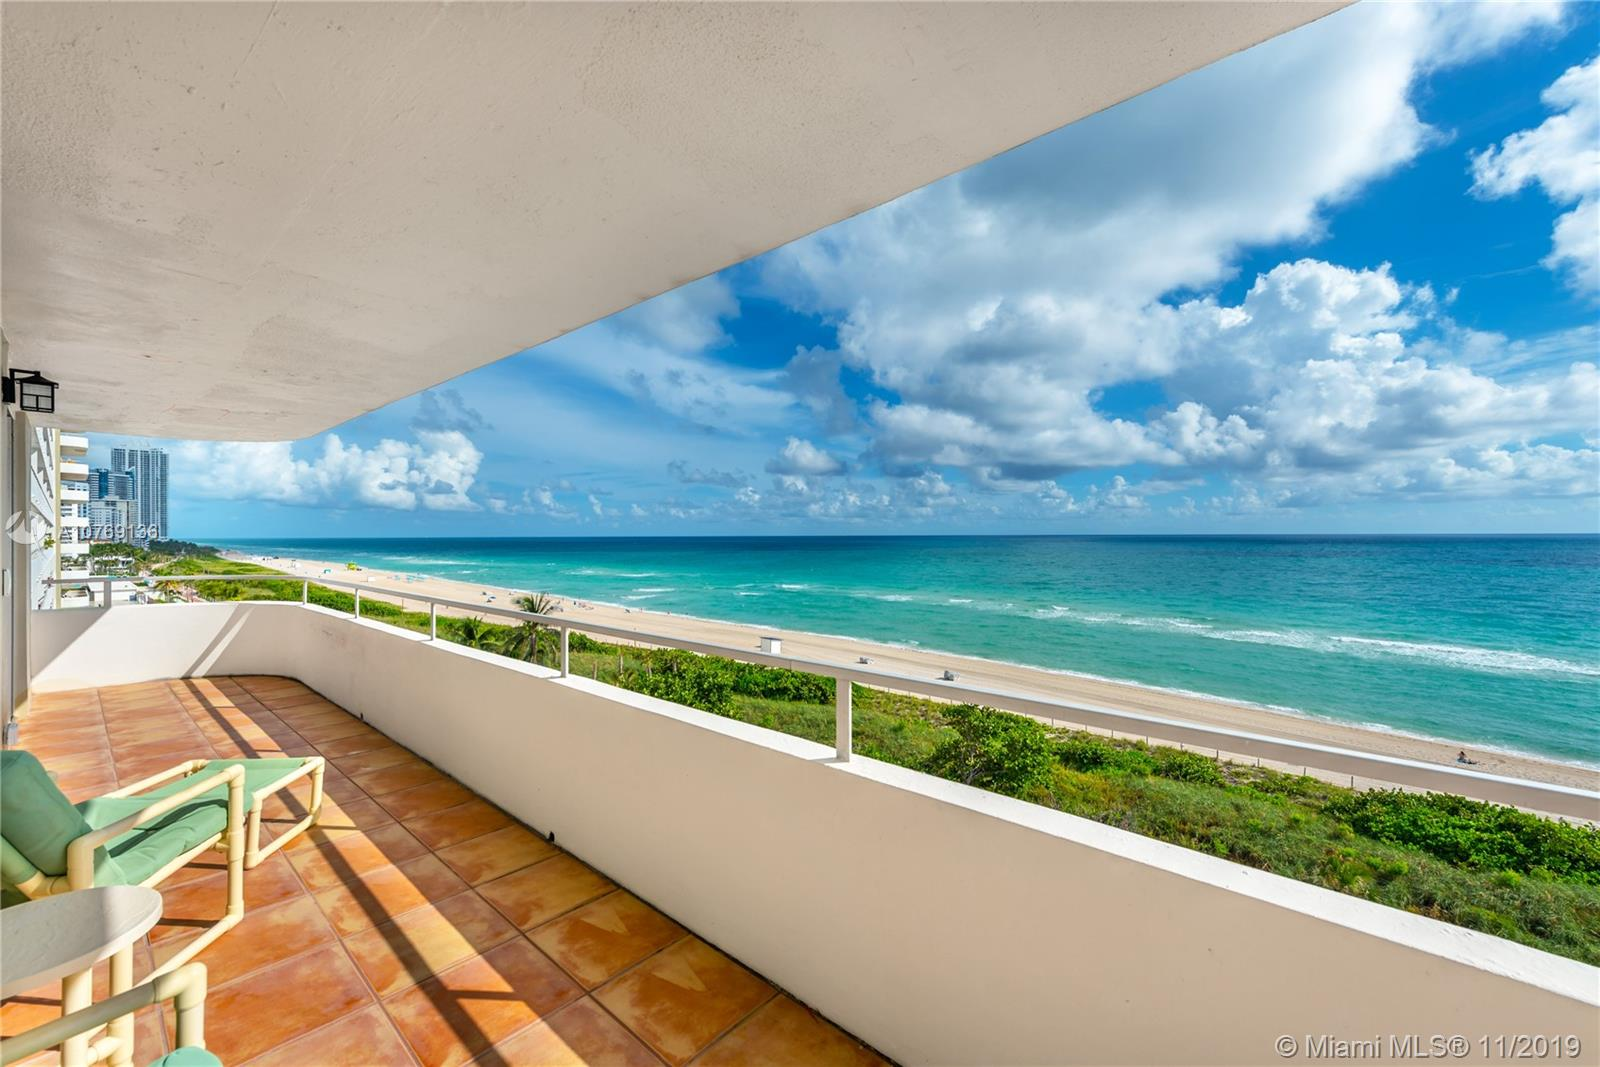 5555 Collins Ave, 8N - Miami Beach, Florida